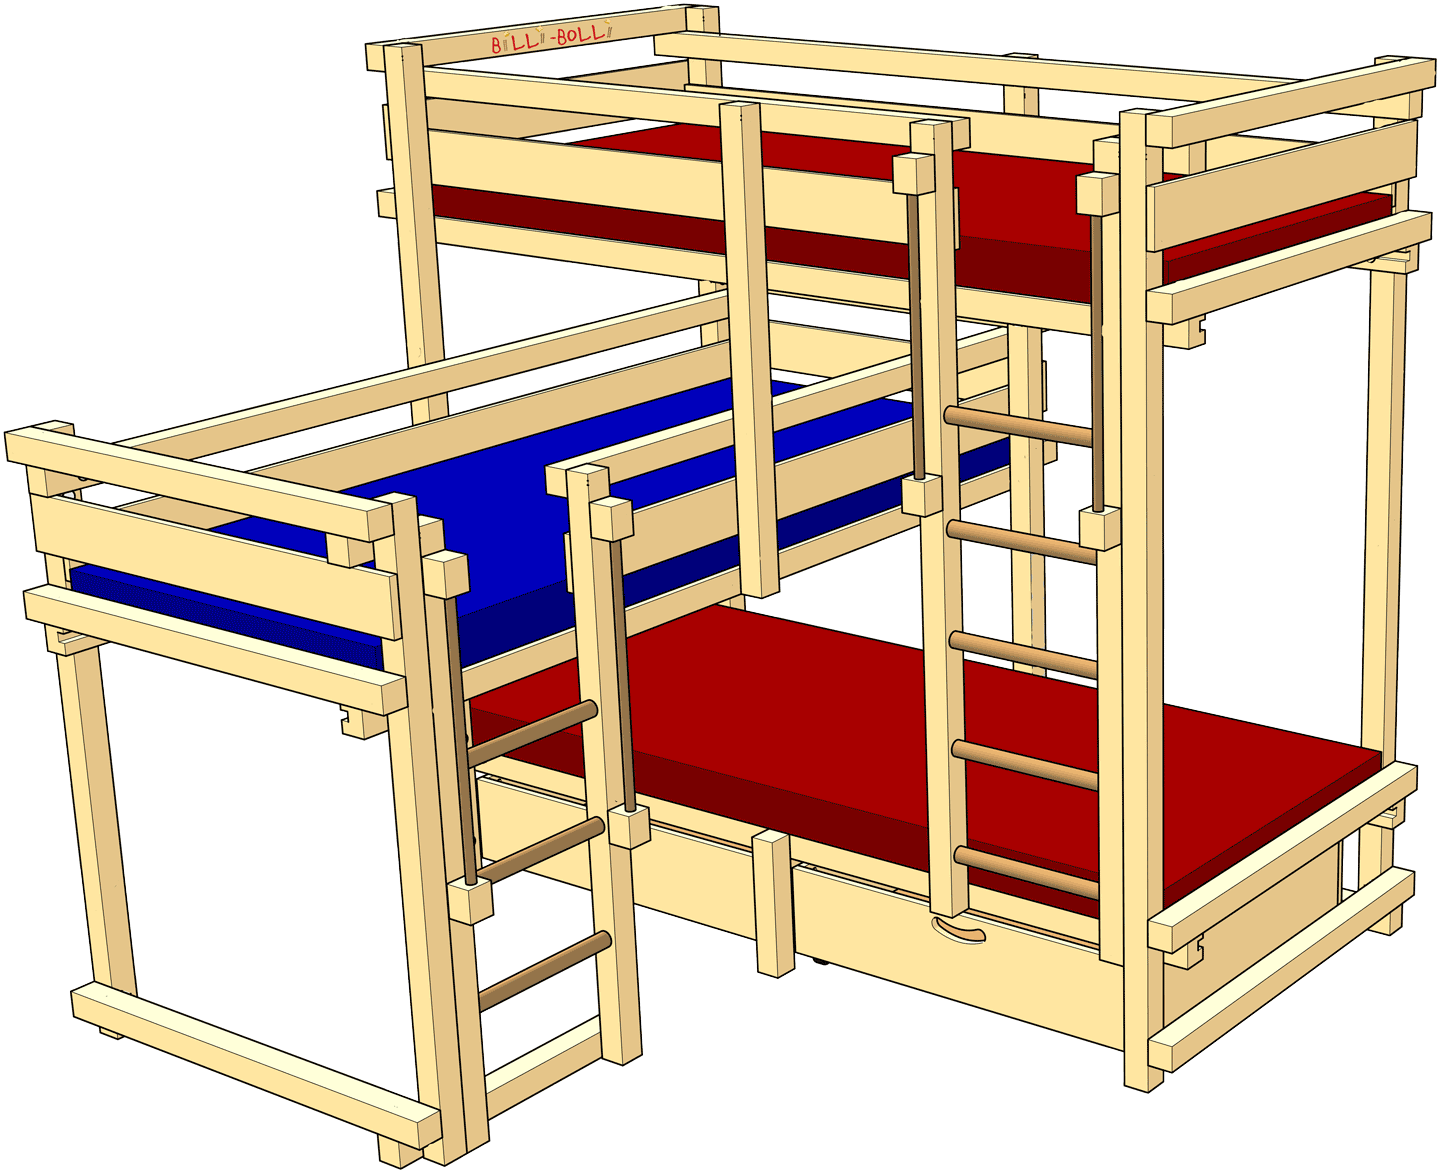 Picture of: Bunk Bed For Three Children Buy Online Billi Bolli